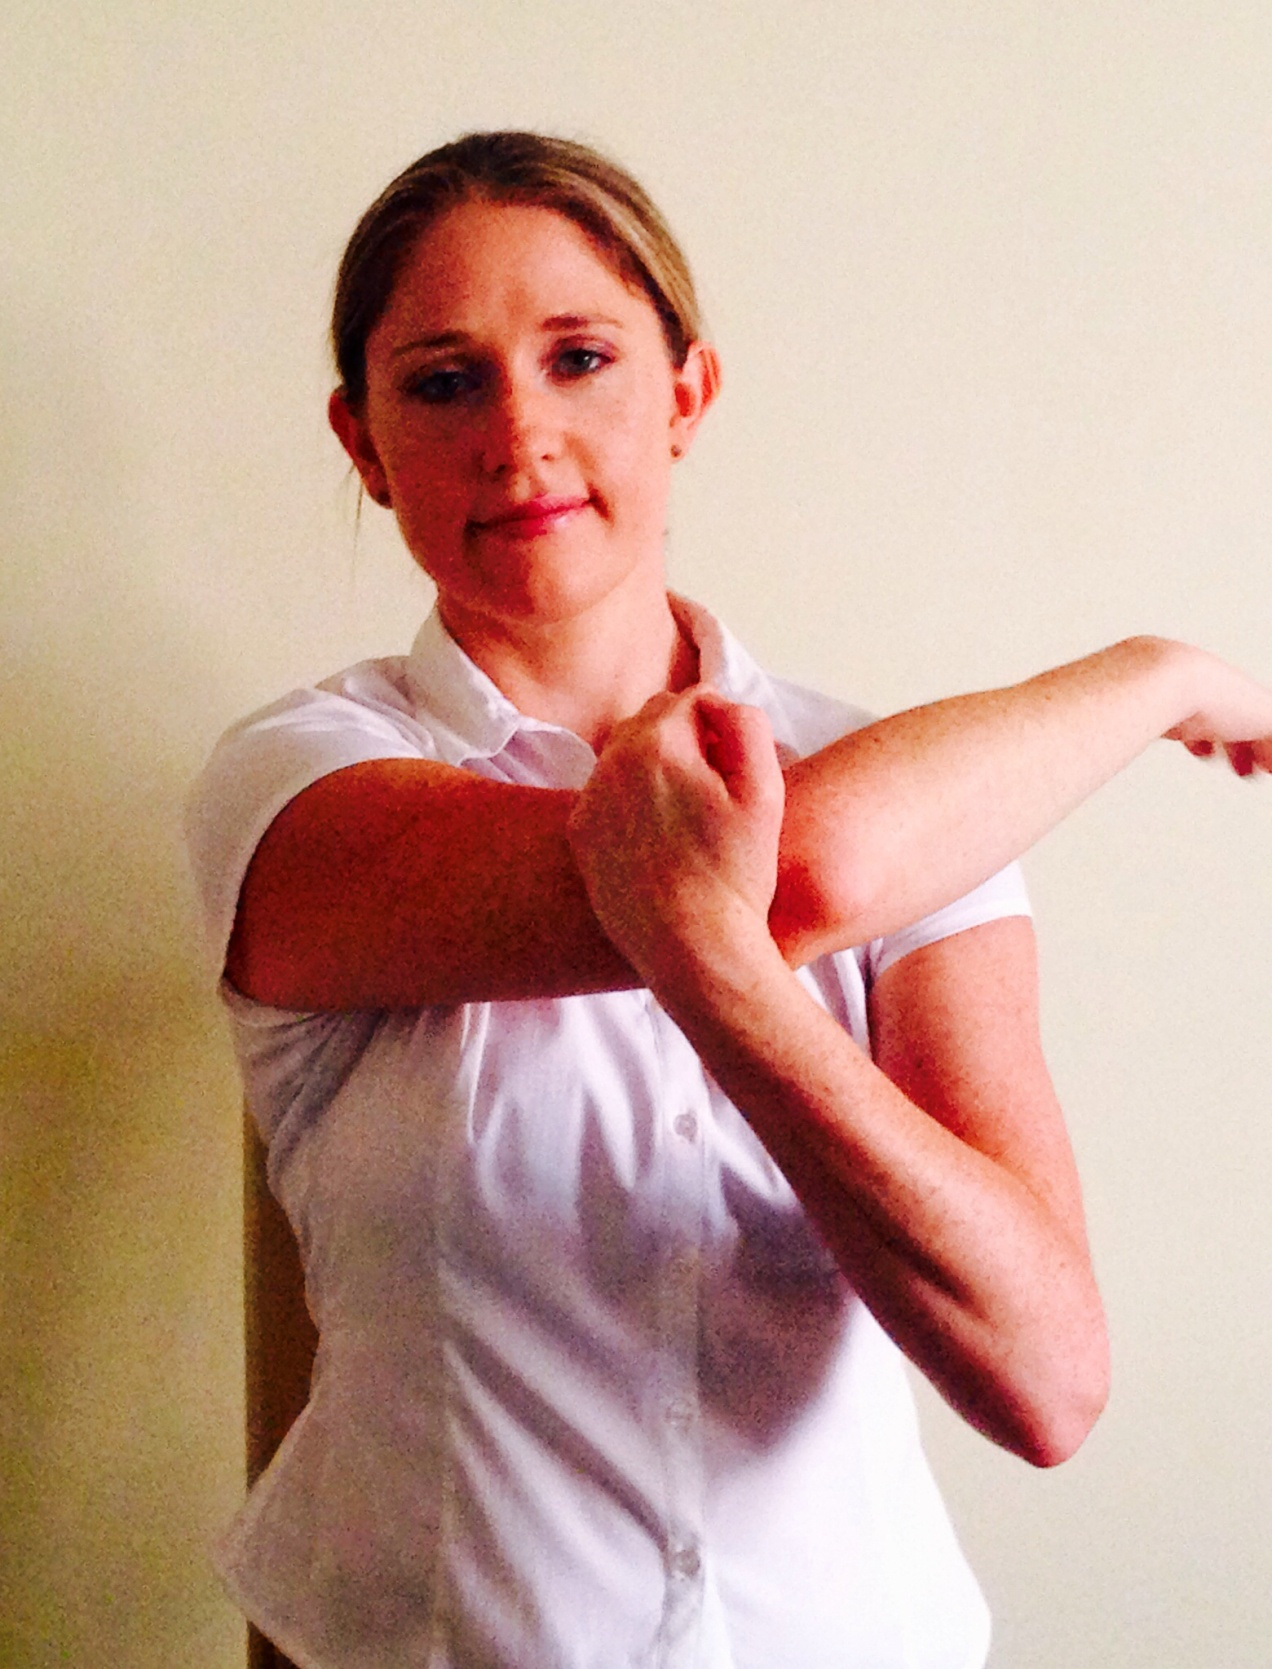 Shoulder Stretches | Body and Mindset Wellness